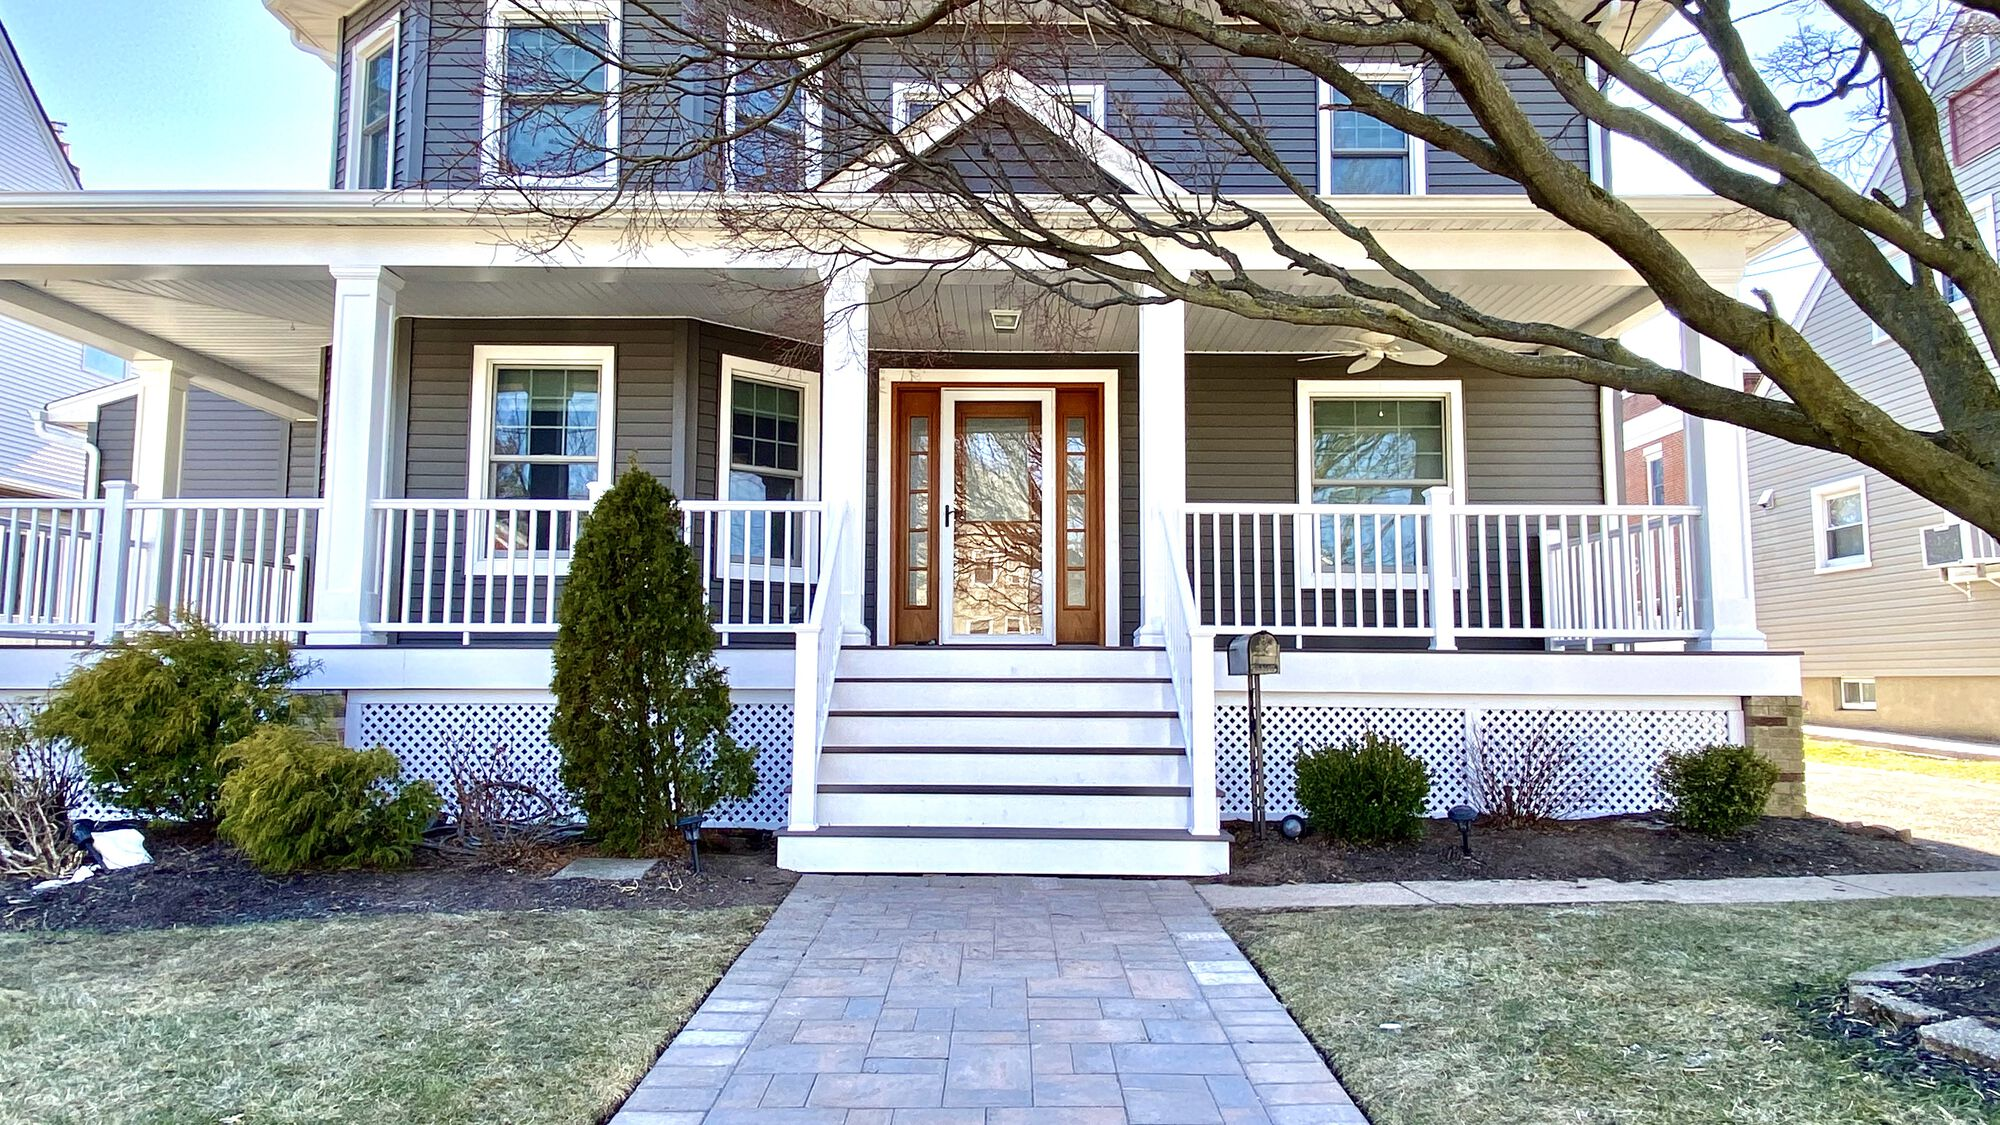 Front Porch Remodeling with Azek Timbertech Grooved Composite Flooring and Rails, HBG Posts, New Composite Steps, Cambridge Paver Walkway in Hasbrouck Heights, Bergen County NJ